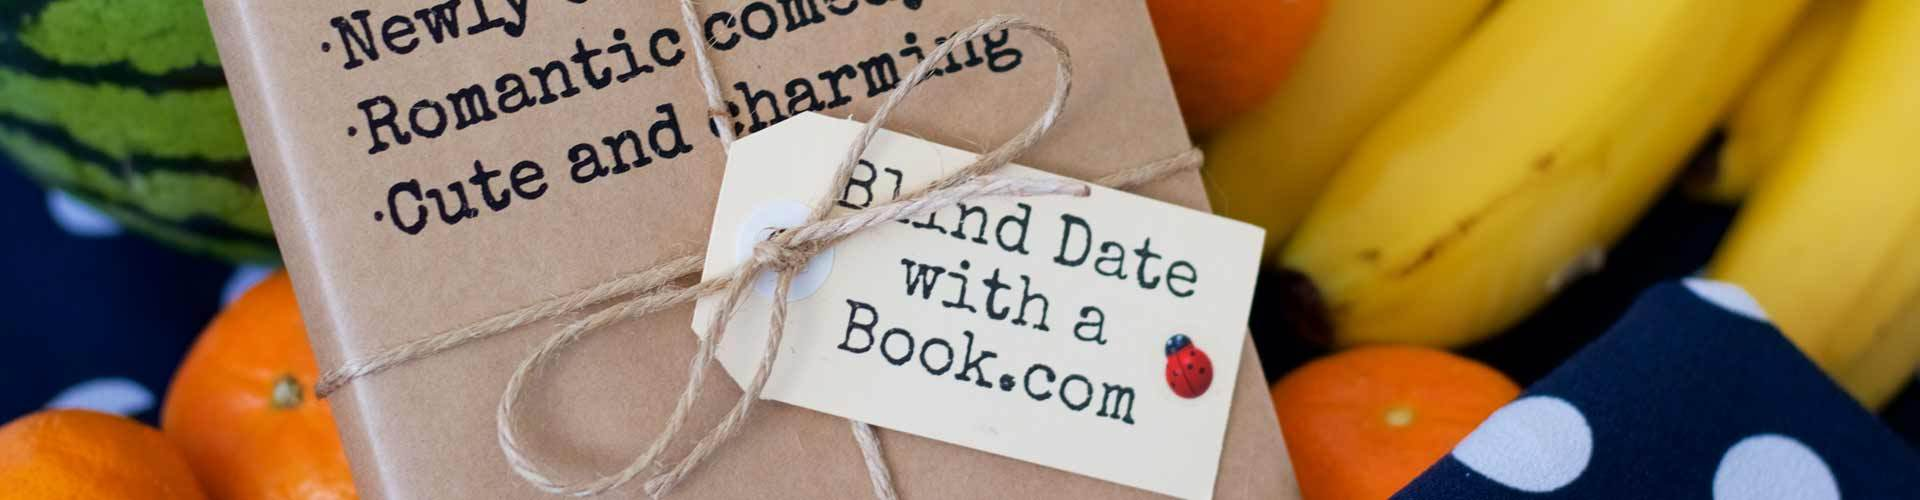 Reclusive Sorceress - Blind Date with a Book